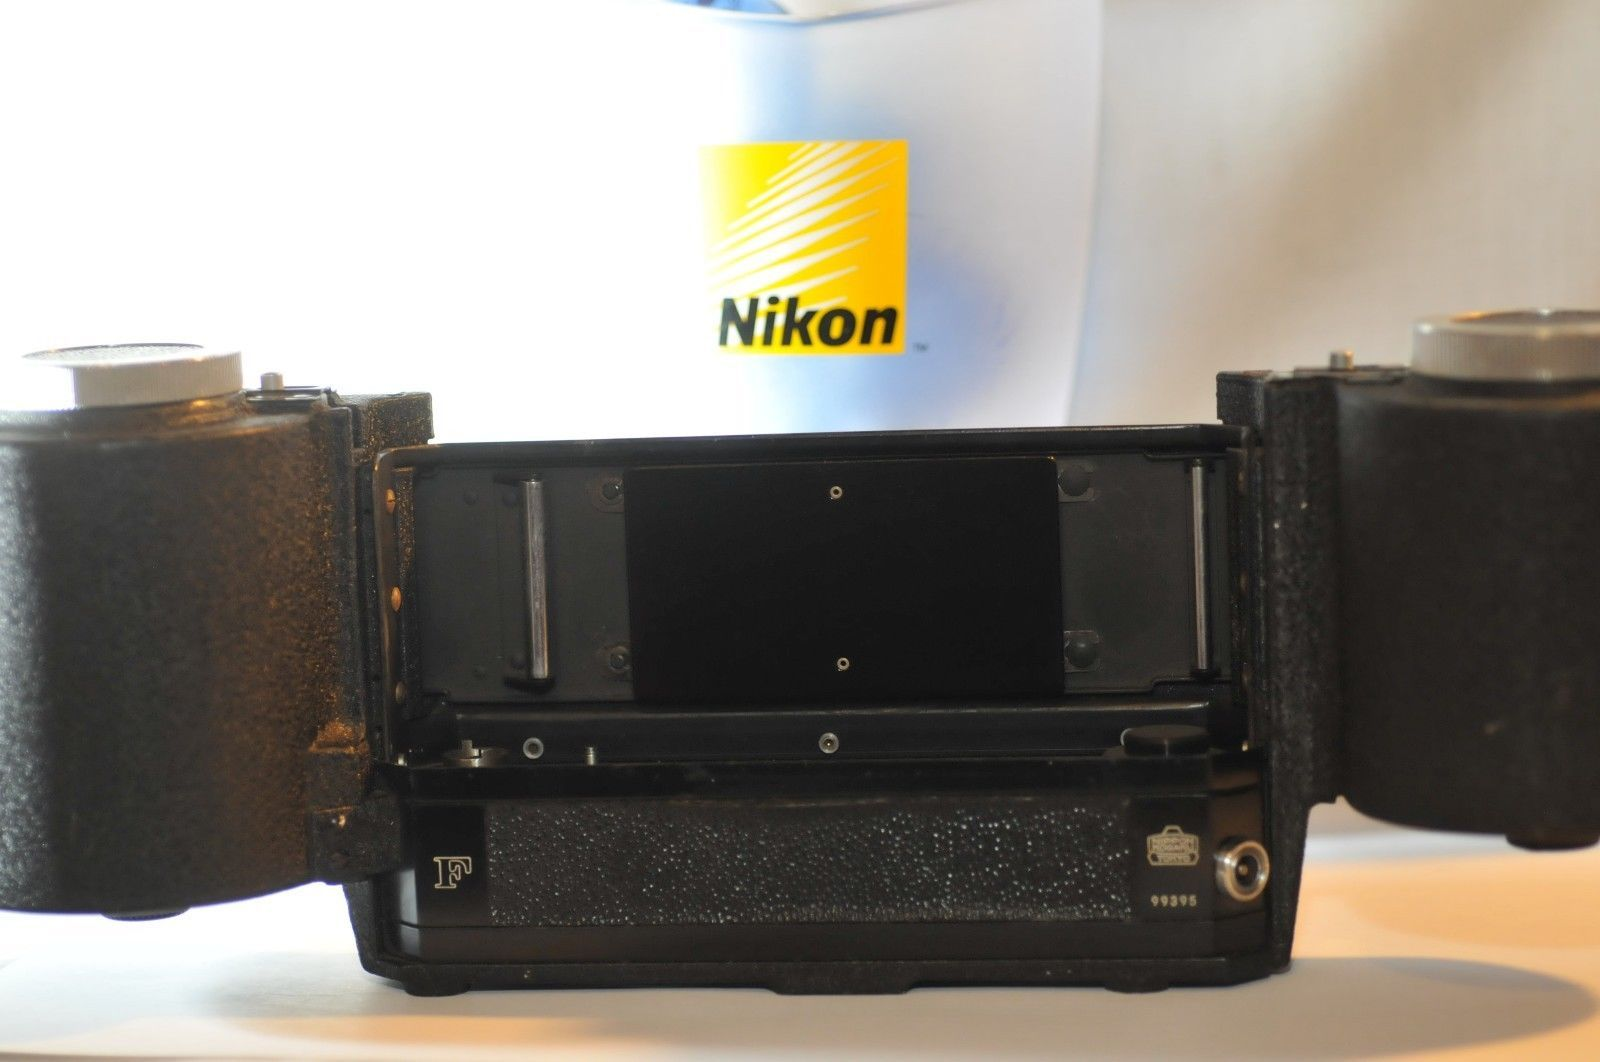 Nikon F-250 F250 Motor Drive EARLY Nippon Kogaku 99395 for F RARE https://t.co/bNKQfFZC9k https://t.co/eDqyRFFdaq